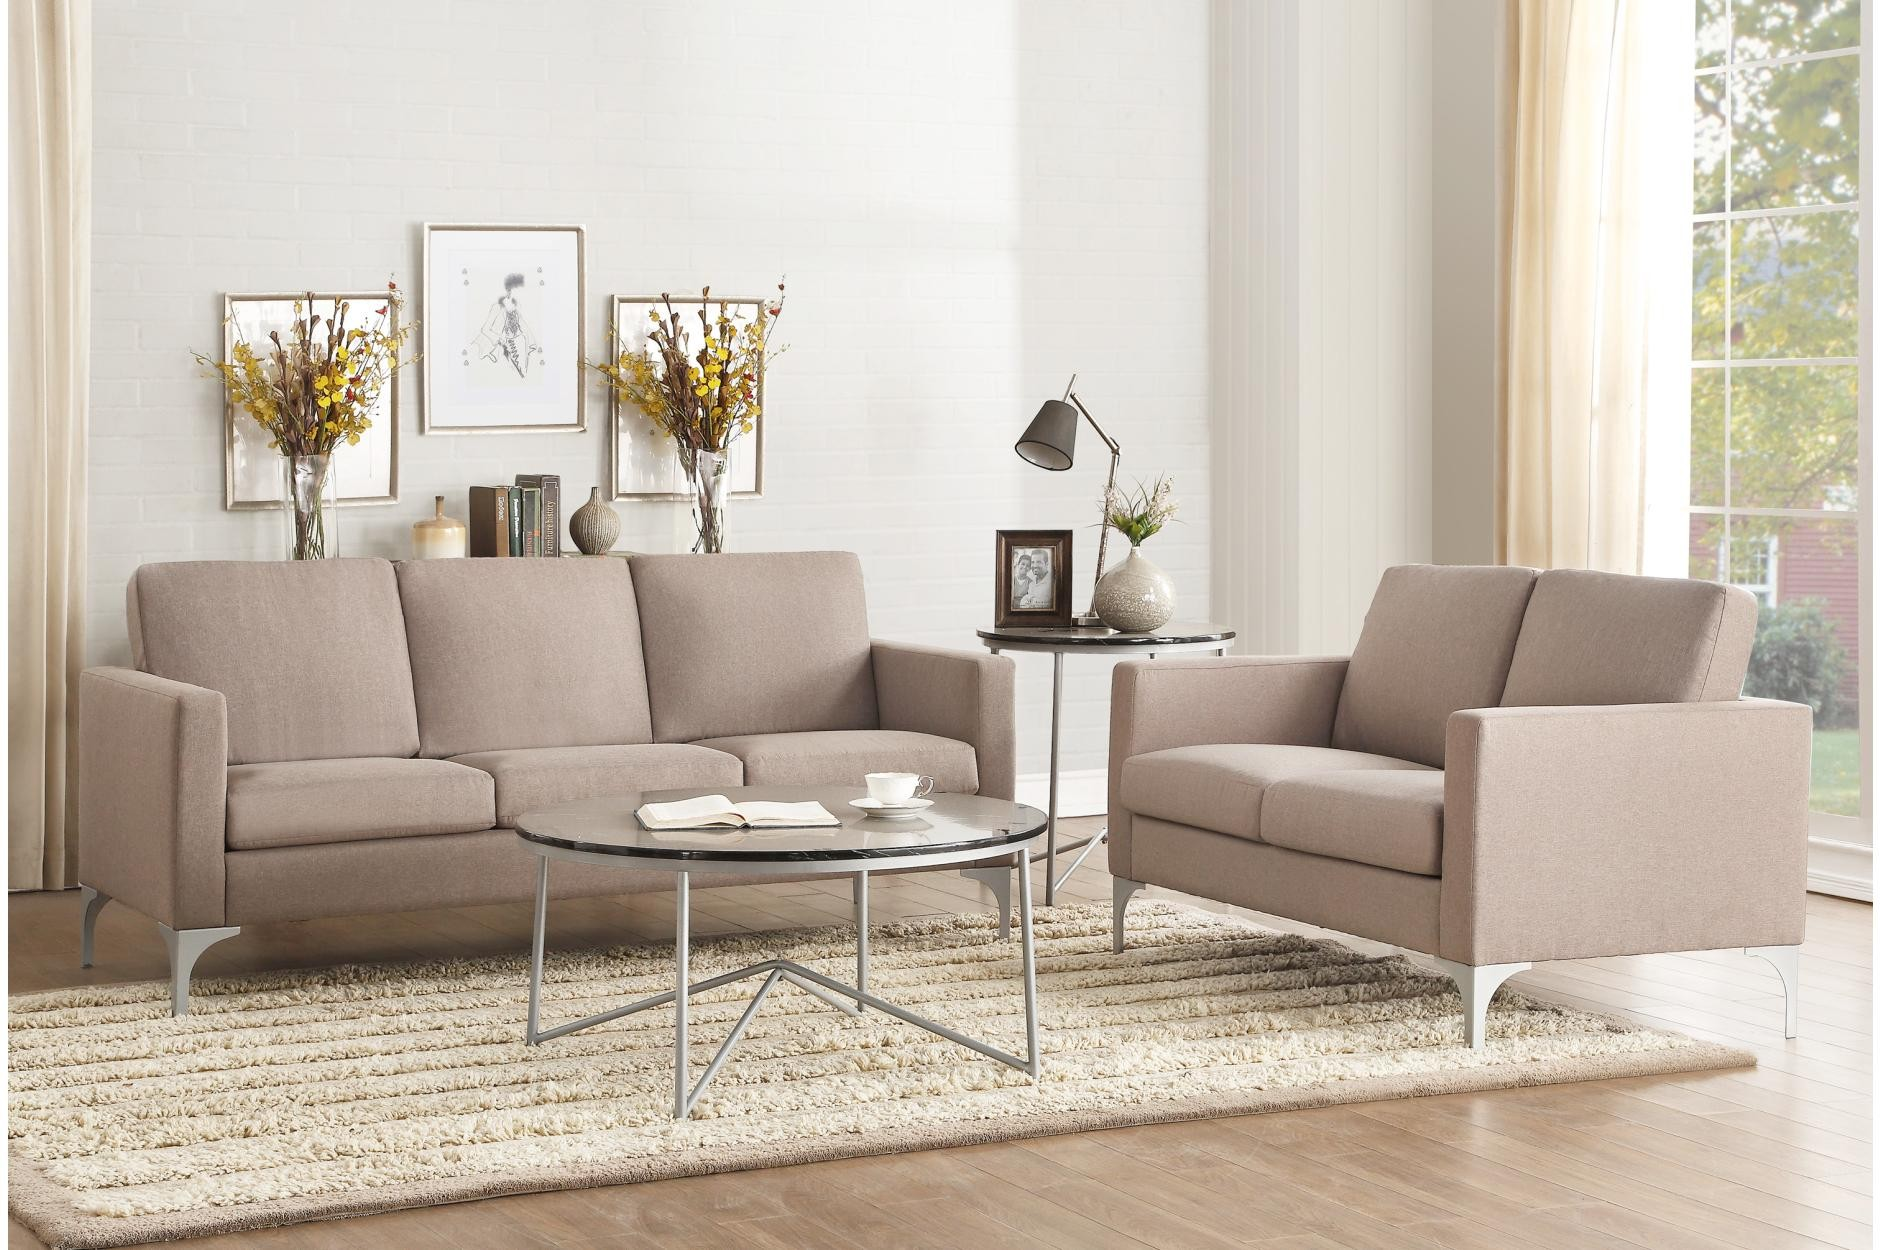 SALE! Soho 2pc. Sofa and Loveseat